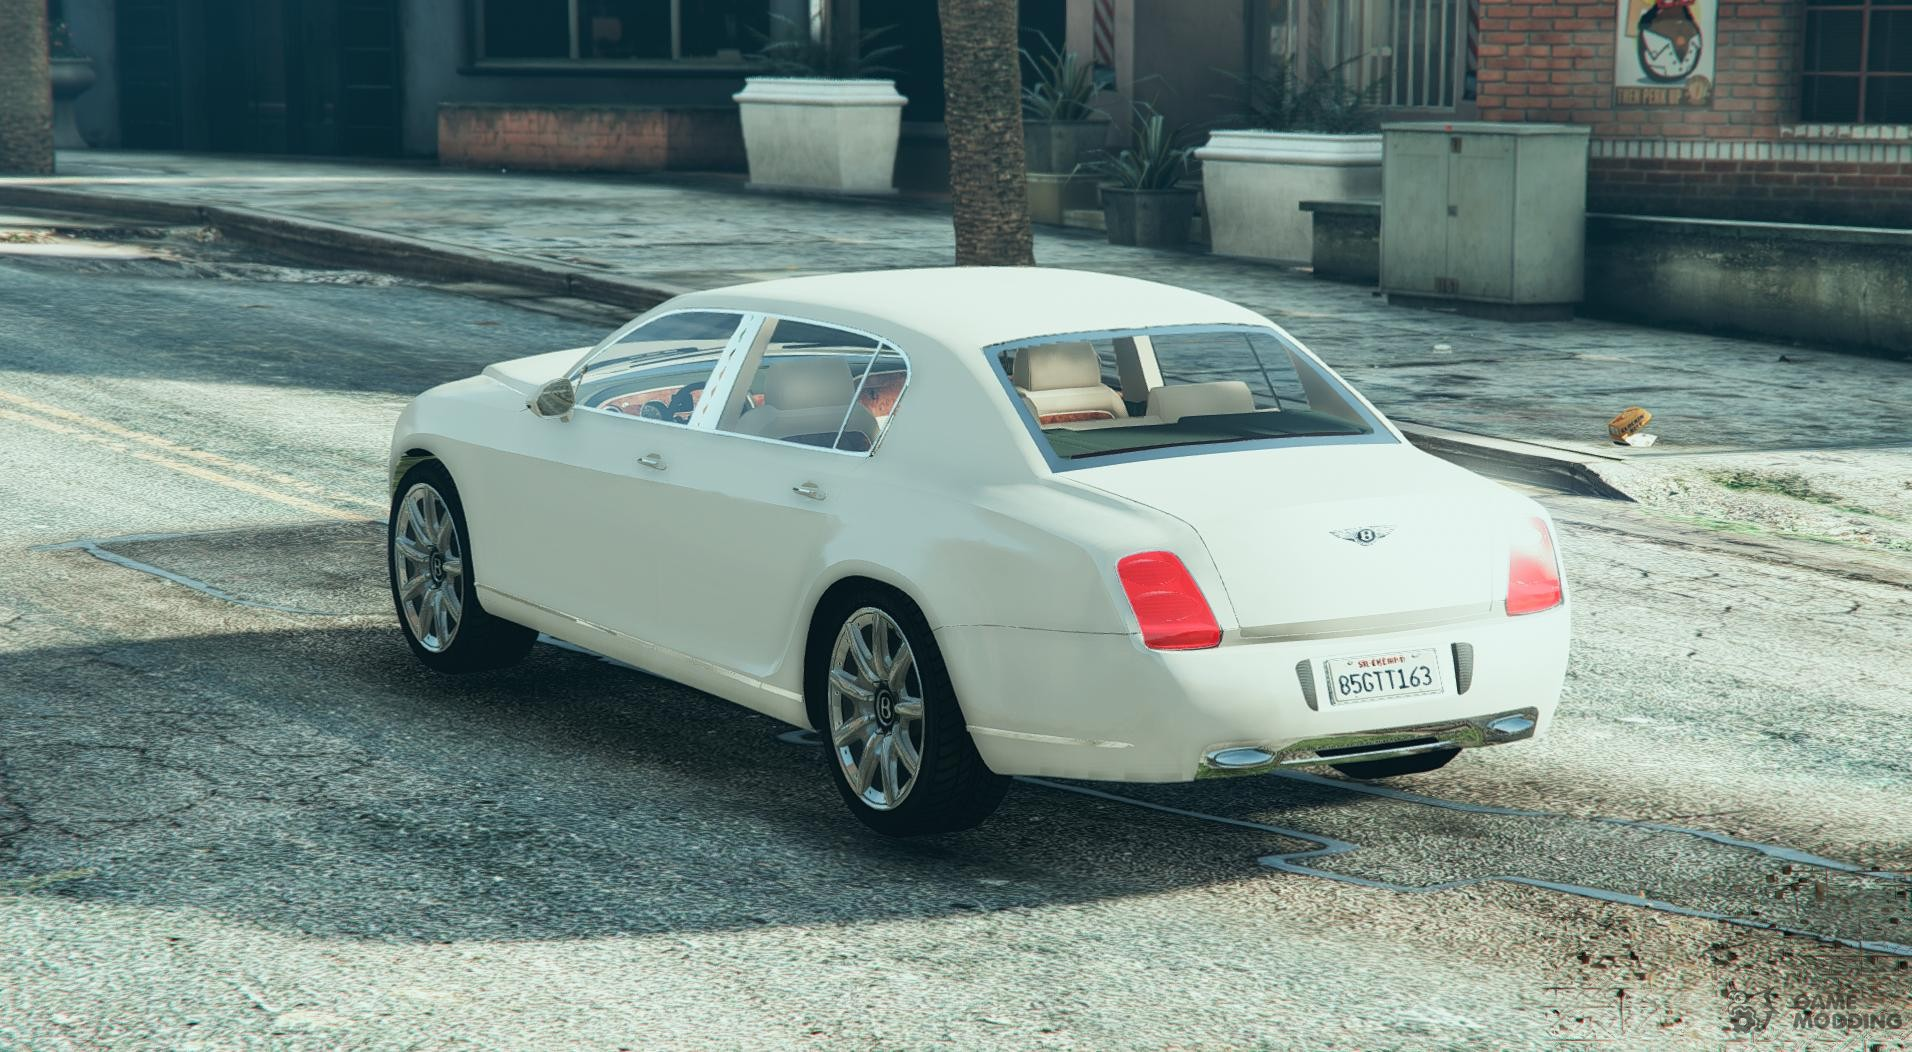 2010 bentley continental flying spur for gta 5 2010 bentley continental flying spur for gta 5 rear left view vanachro Choice Image